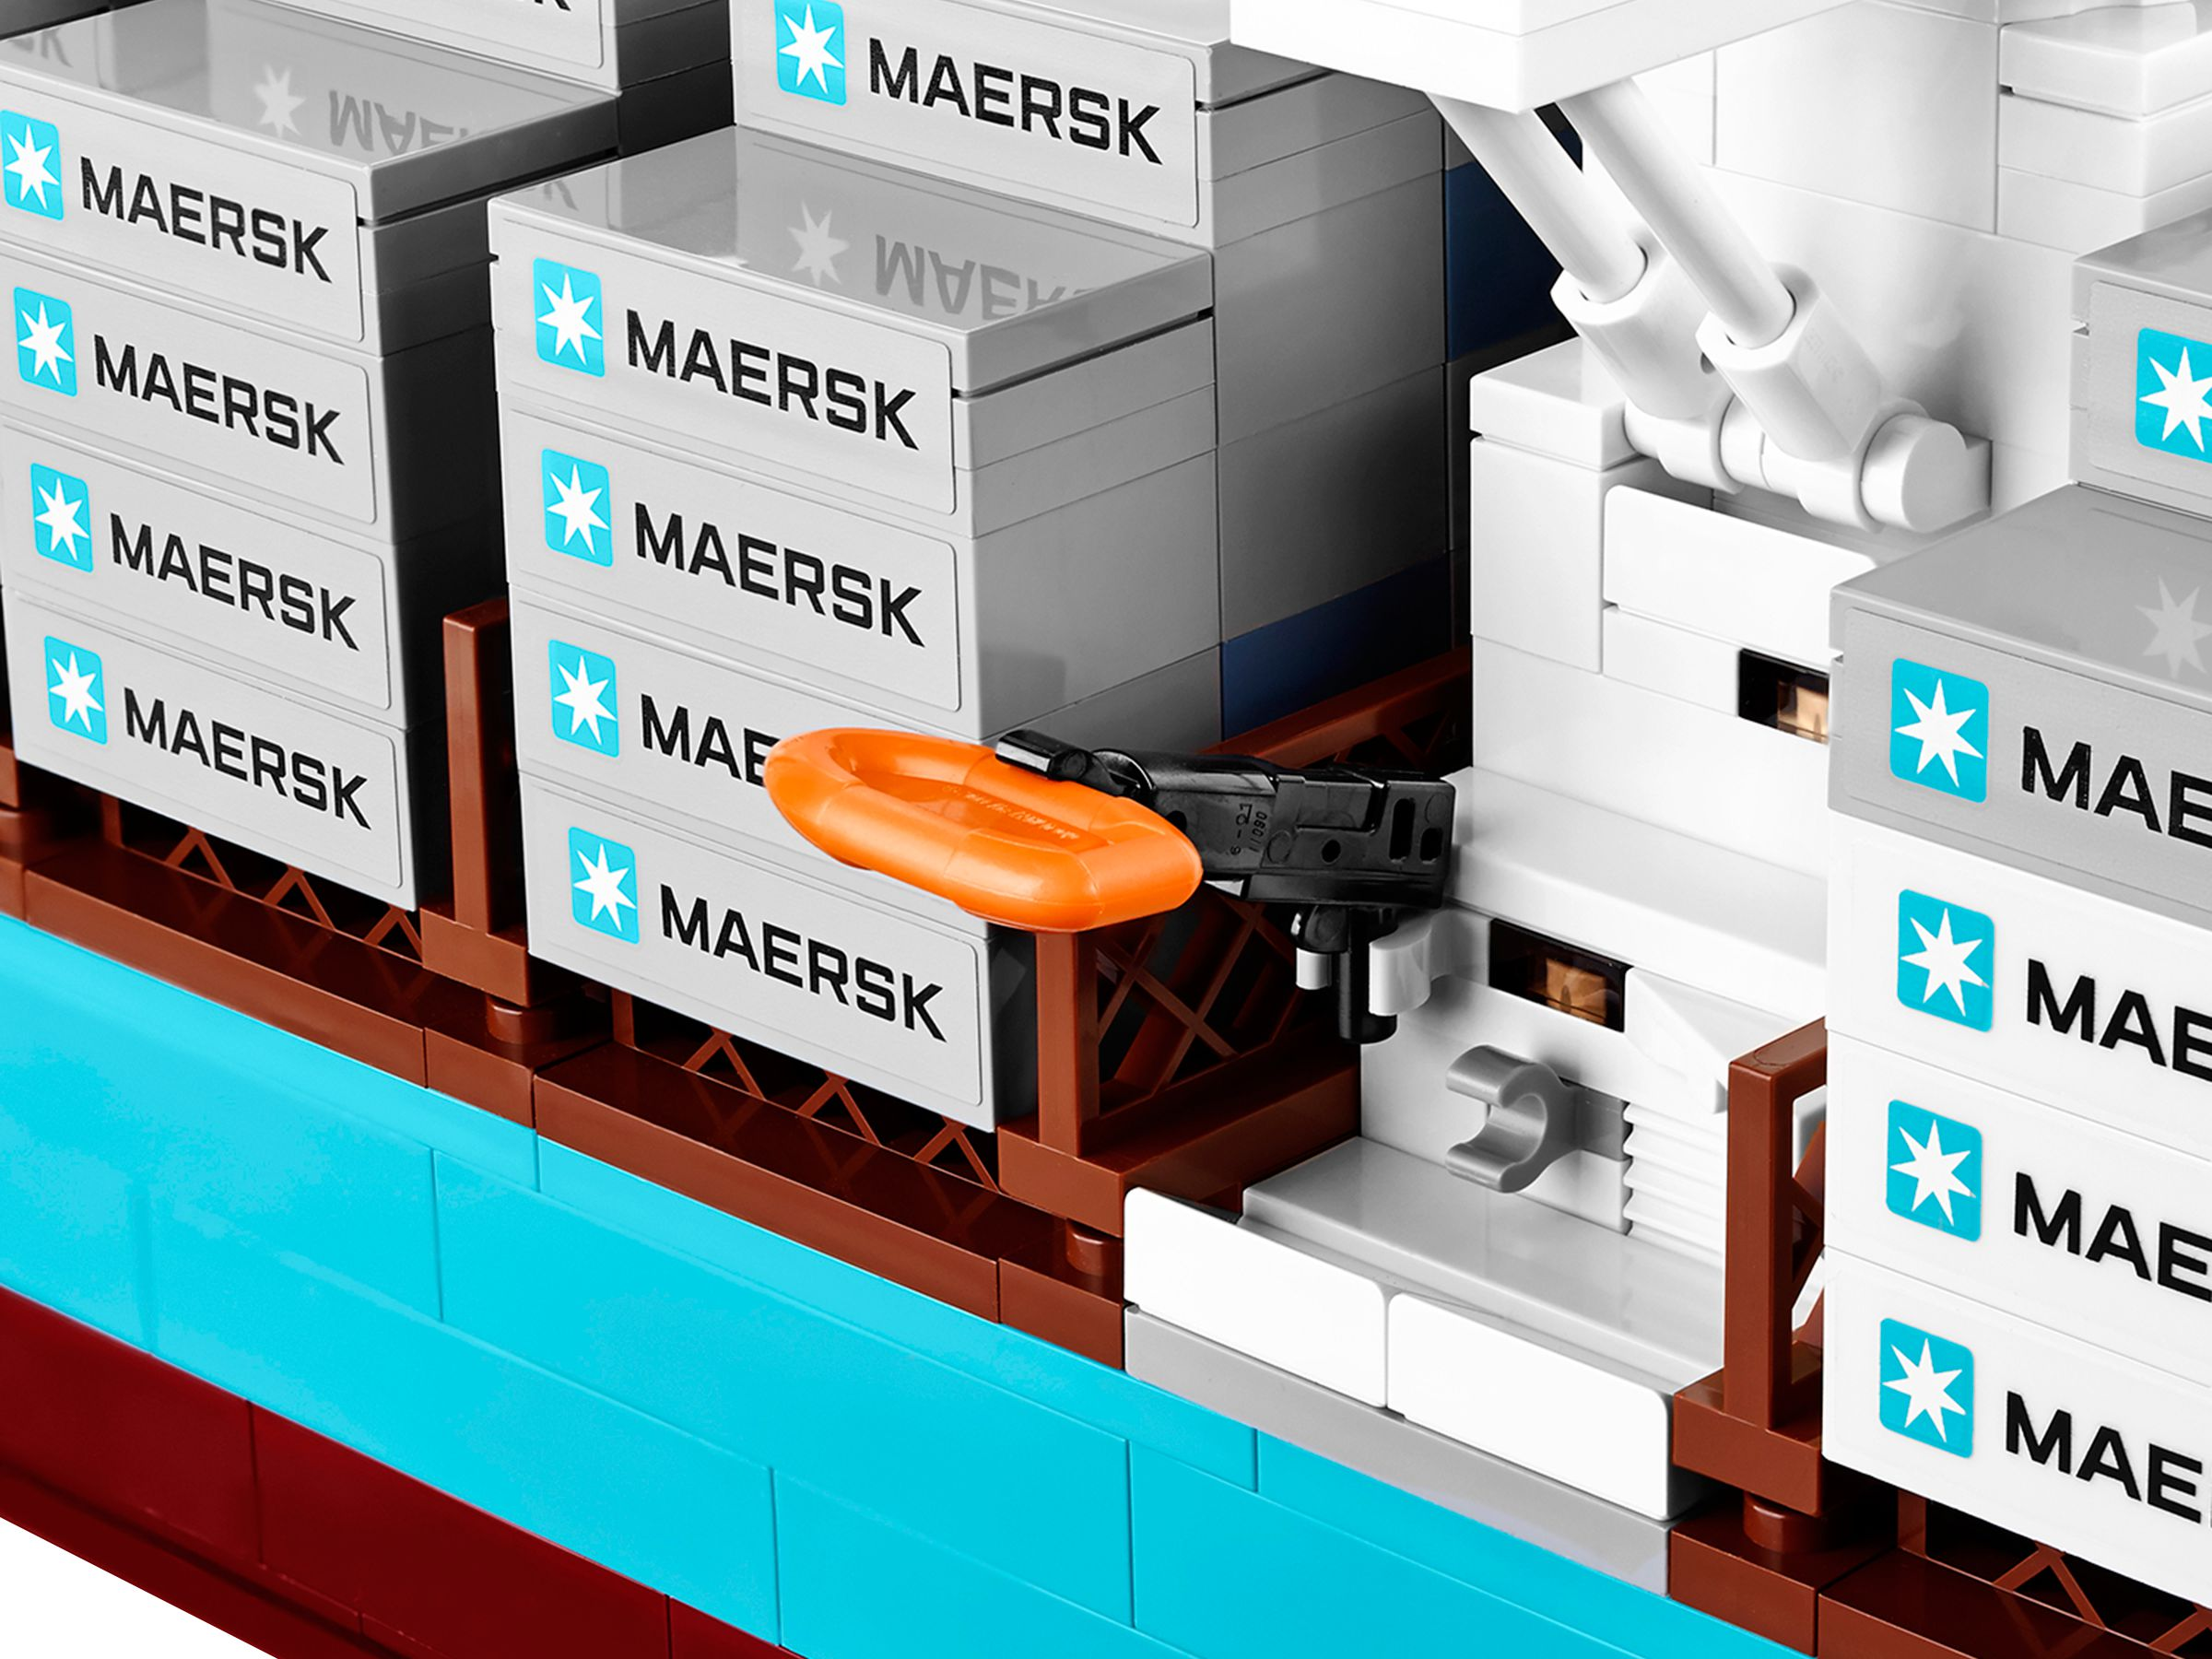 LEGO Advanced Models 10241 Maersk Containerschiff LEGO_10241_alt3.jpg